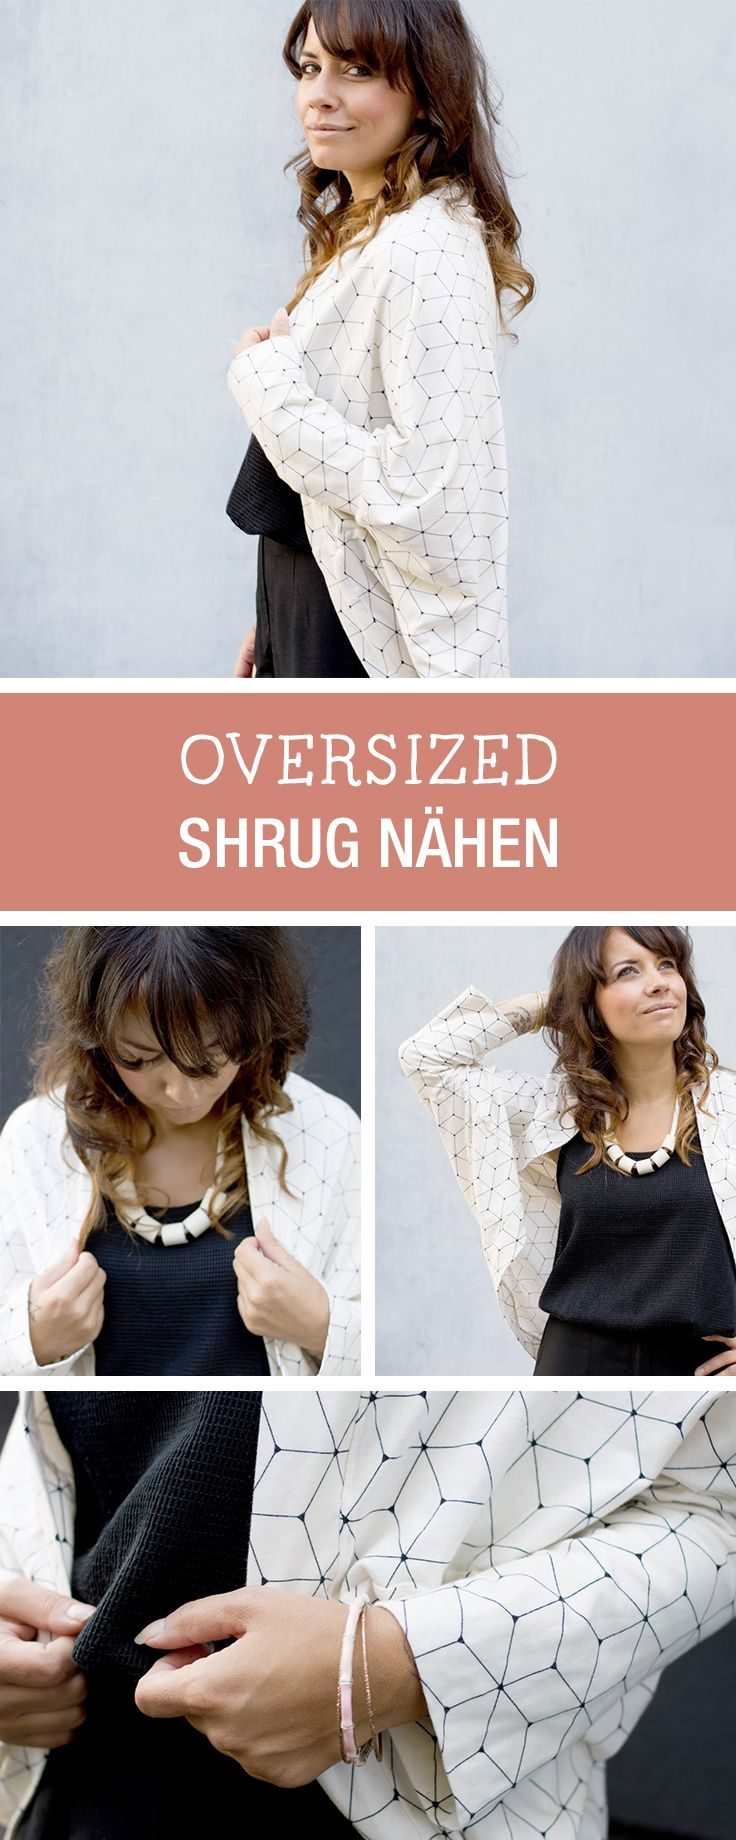 DIY-Anleitung: trendigen Oversized Shrug für den Herbst nähen, bequemer Cardigan / DIY-tutorial: sewing trendy oversized shrug for autumn season, casual cardigan via DaWanda.com